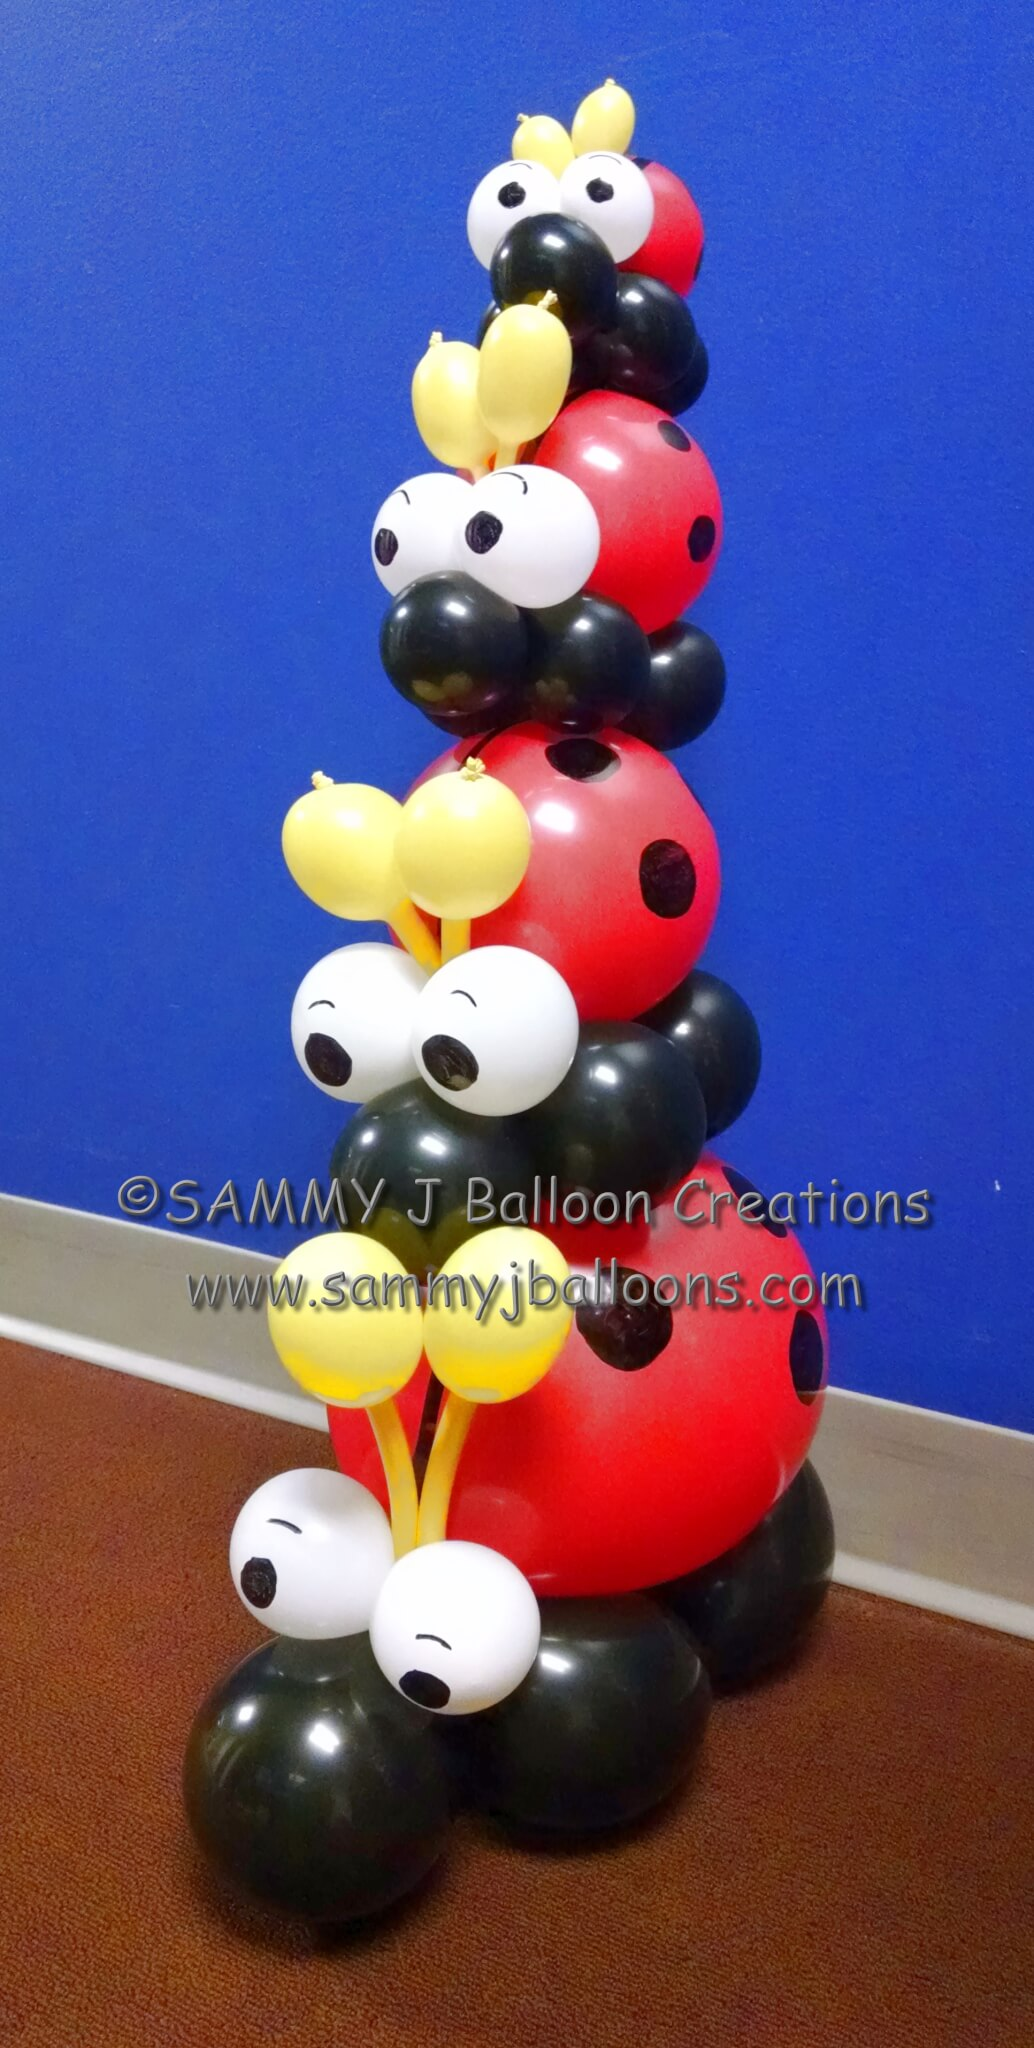 SAMMY J Balloon Creations st louis balloons ladybugs